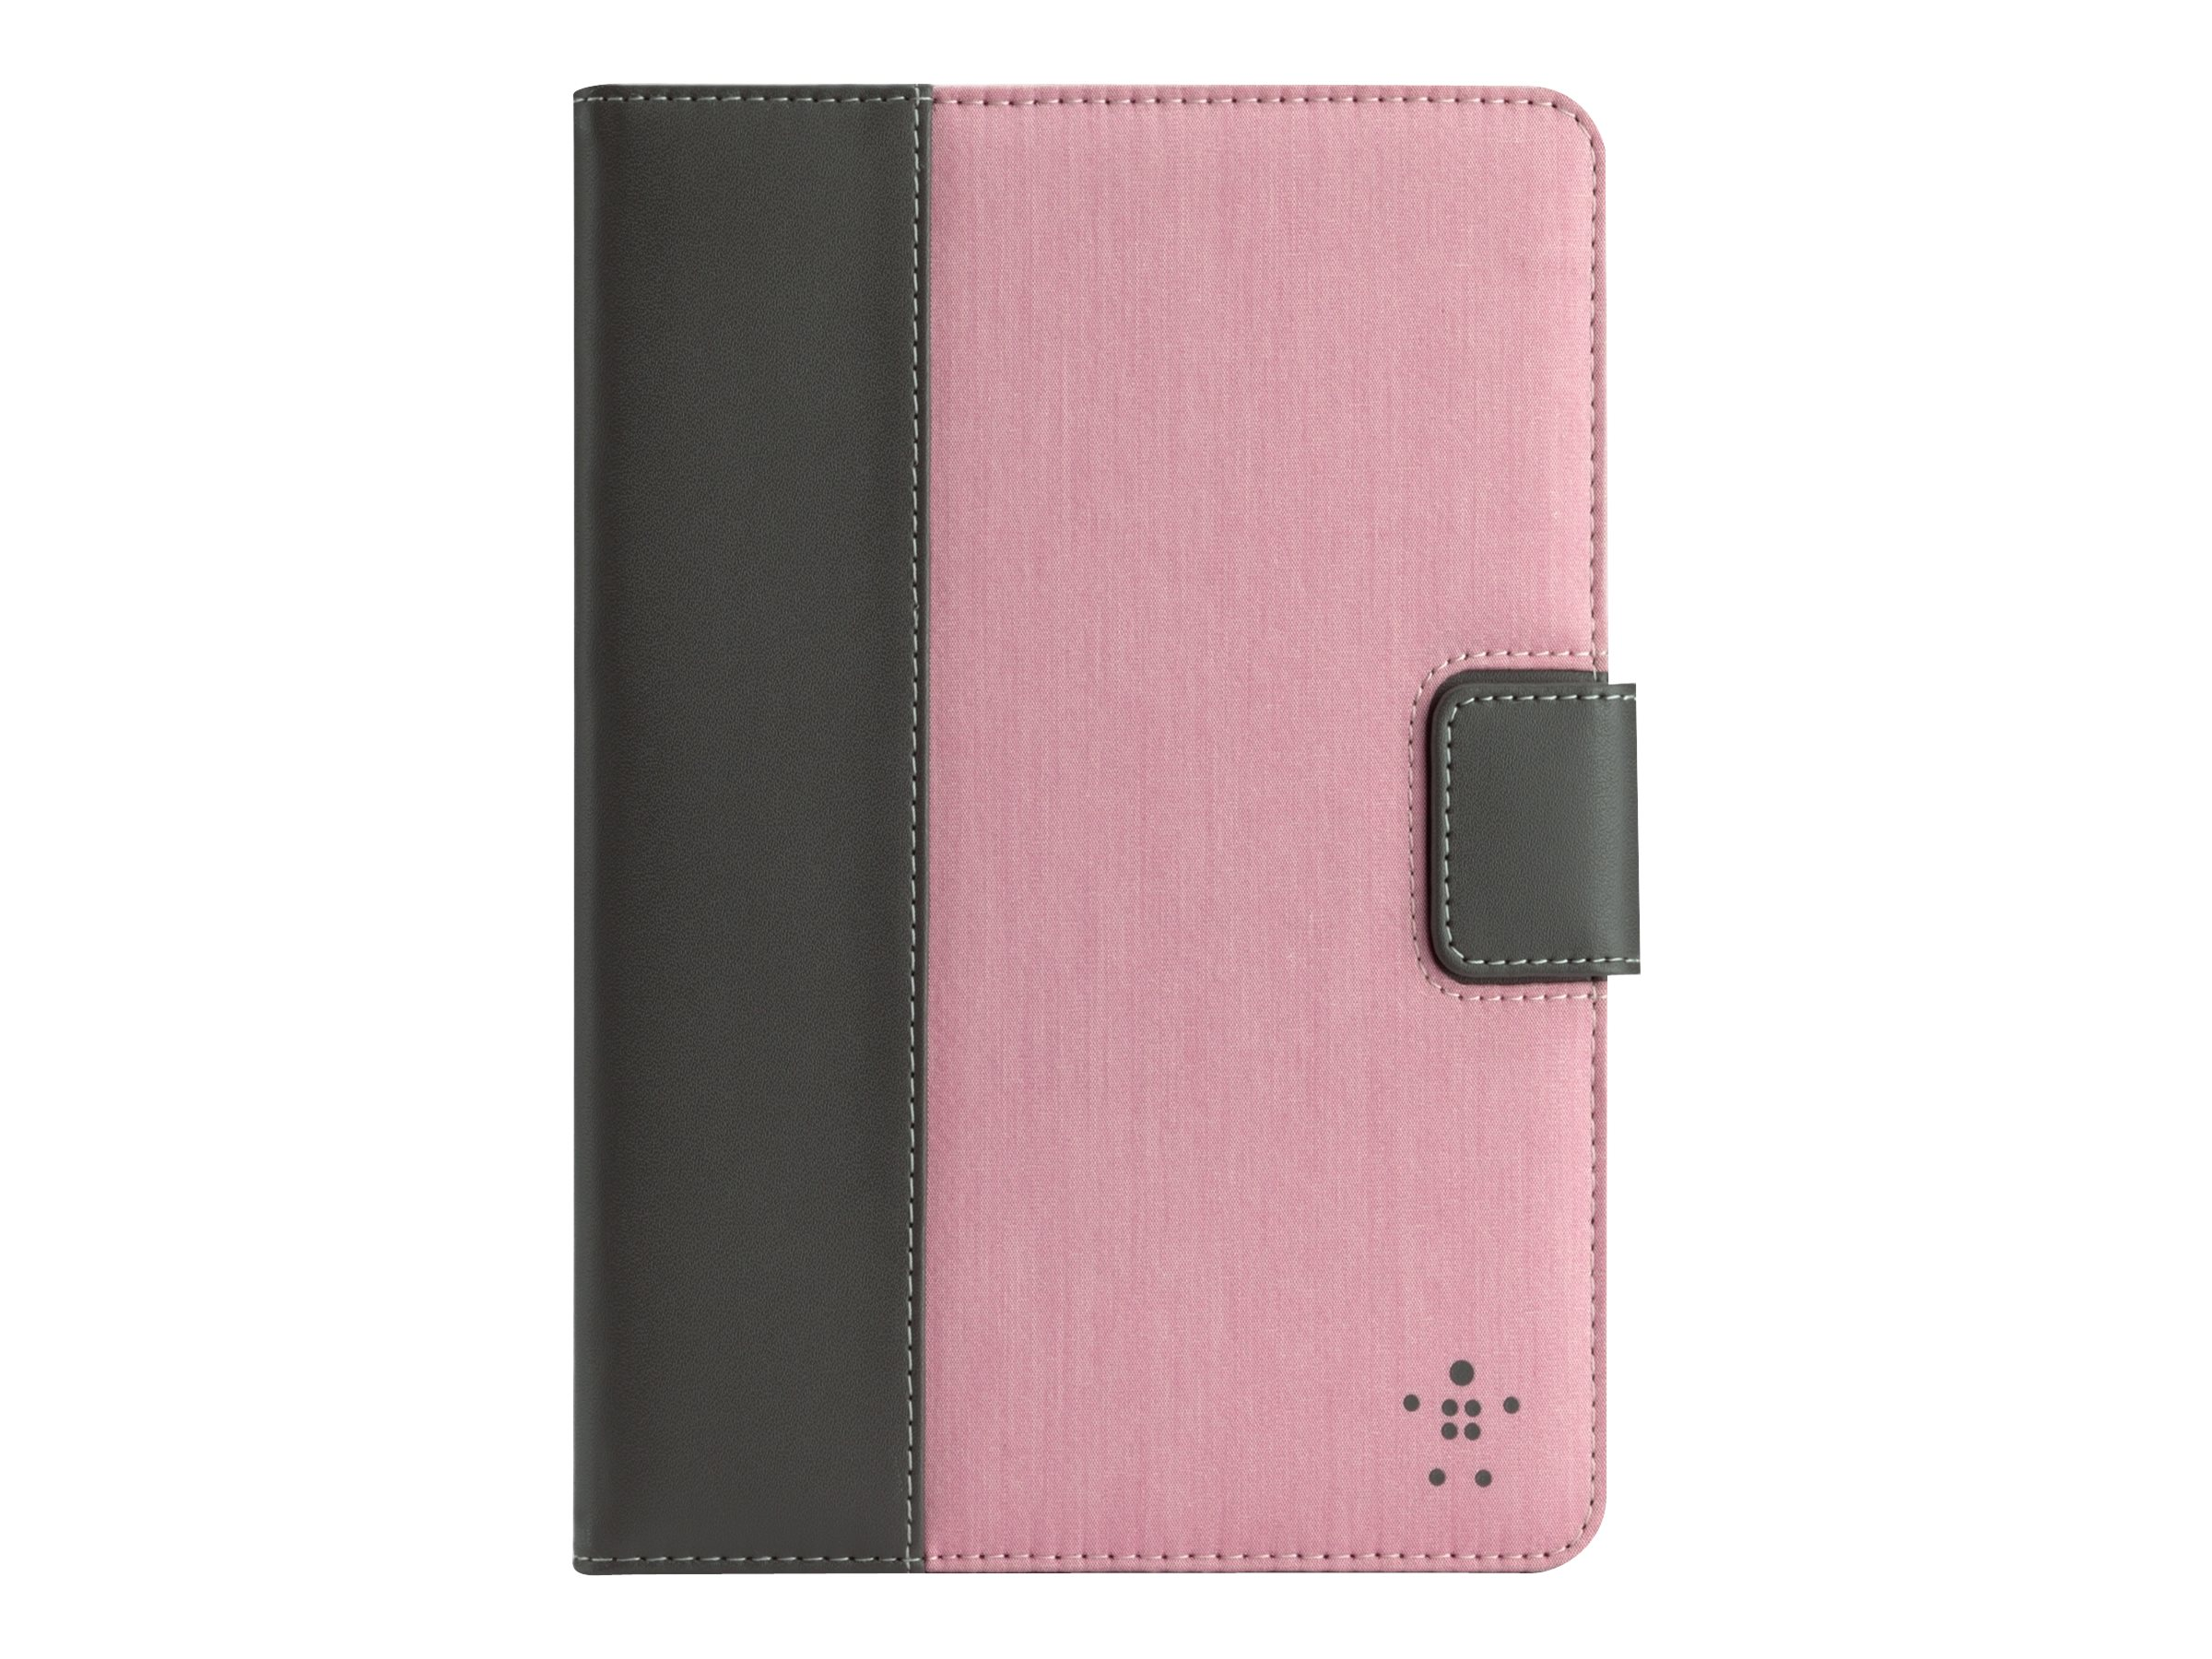 Belkin Chambray Tab Cover with Stand for iPad mini, Pink, F7N004TTC03, 14987029, Carrying Cases - Tablets & eReaders